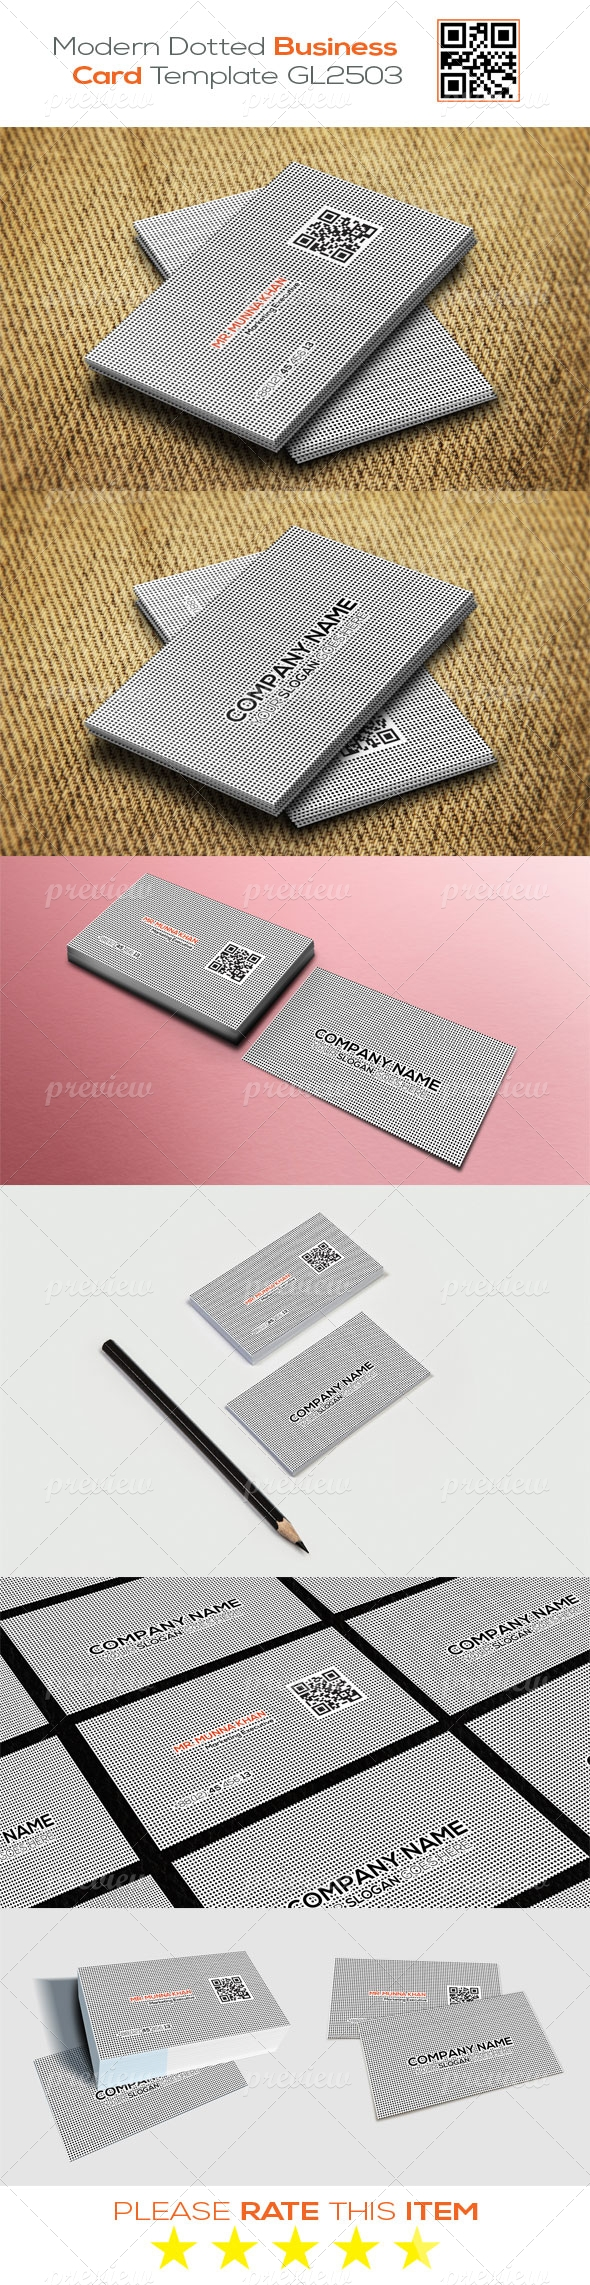 Modern Dotted Business Card Template GL2503